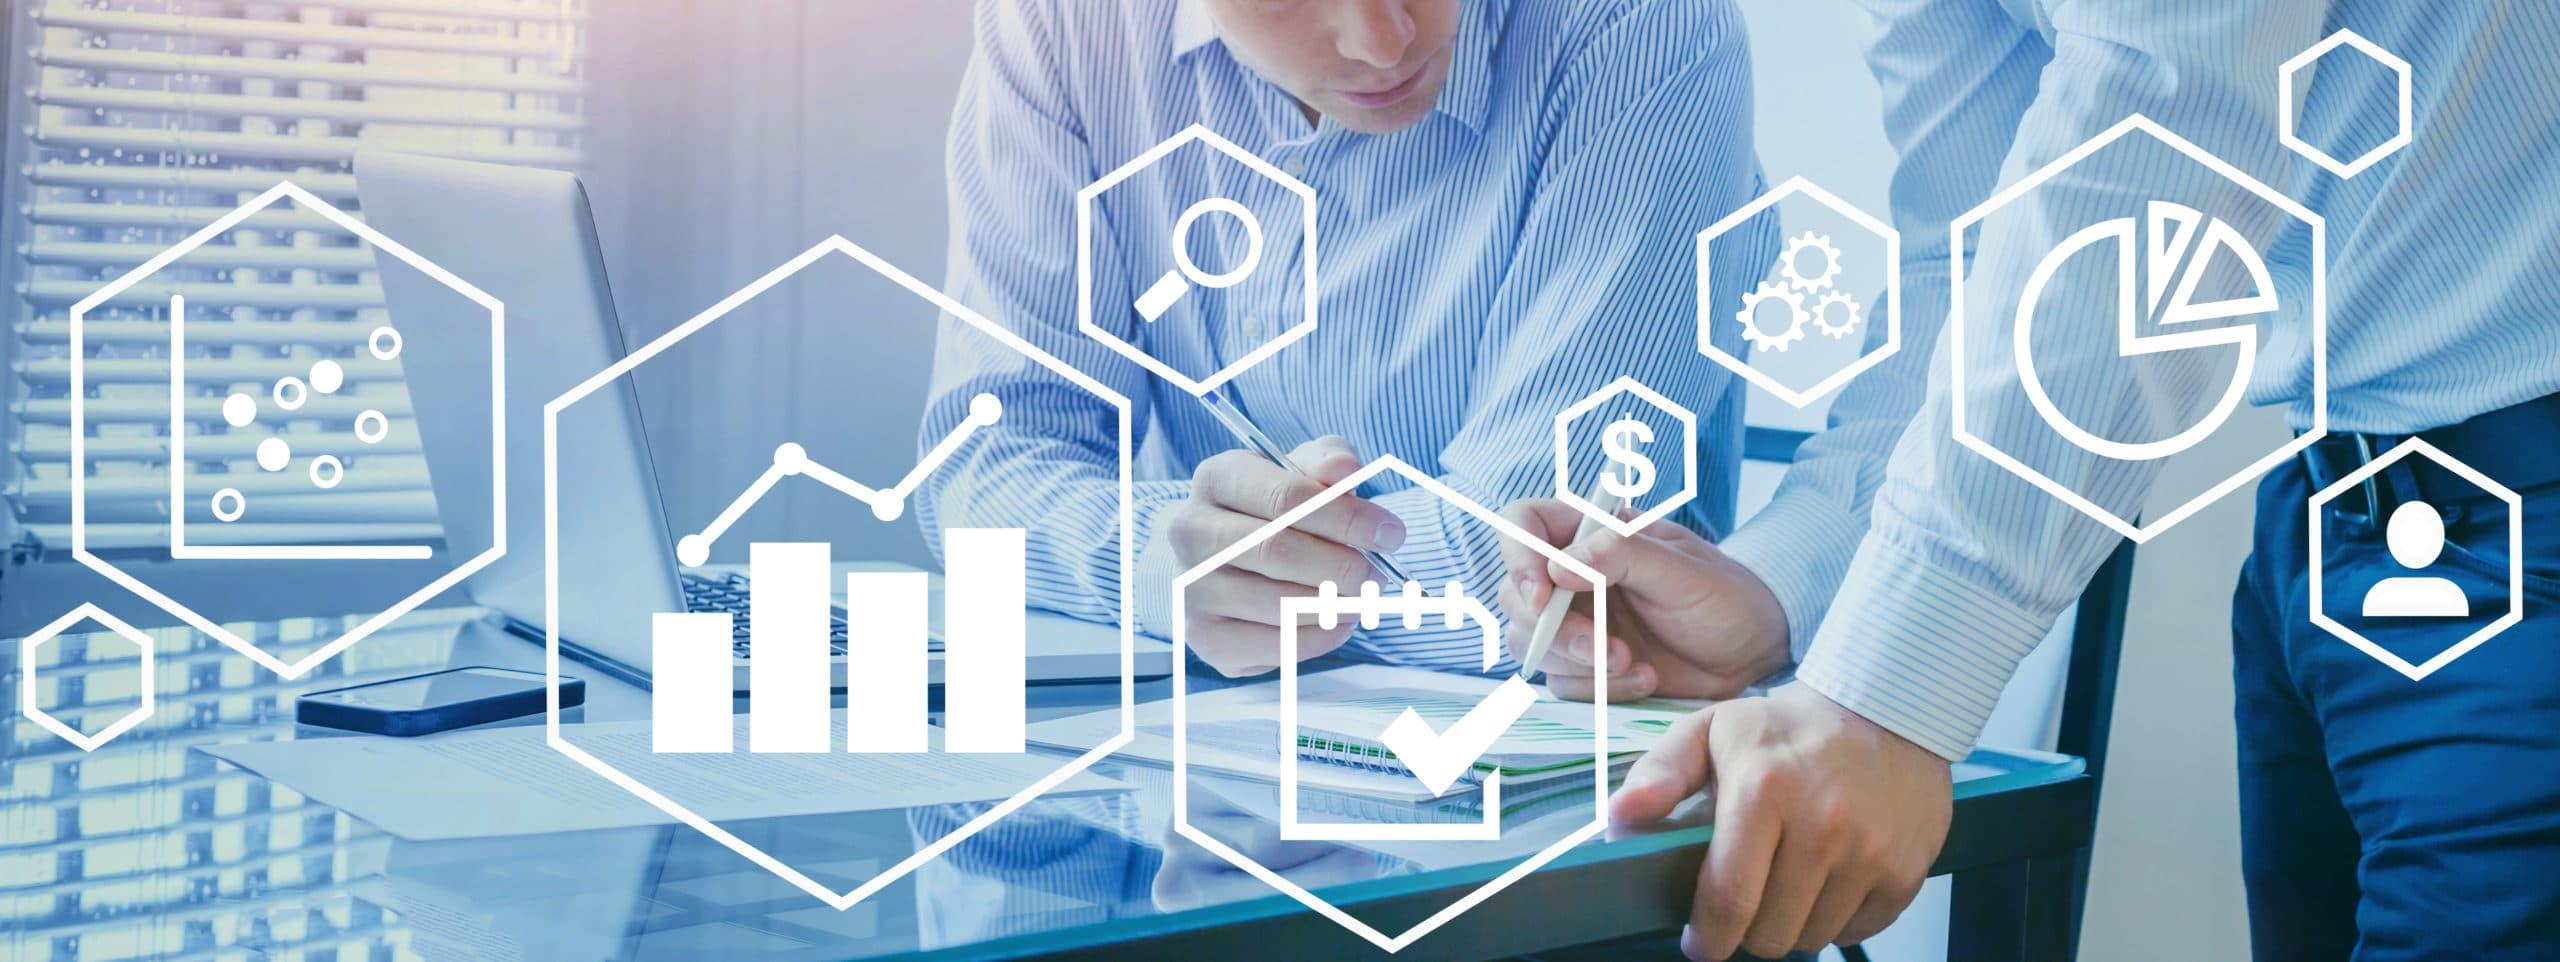 What to Expect in a Marketing Analytics Internship